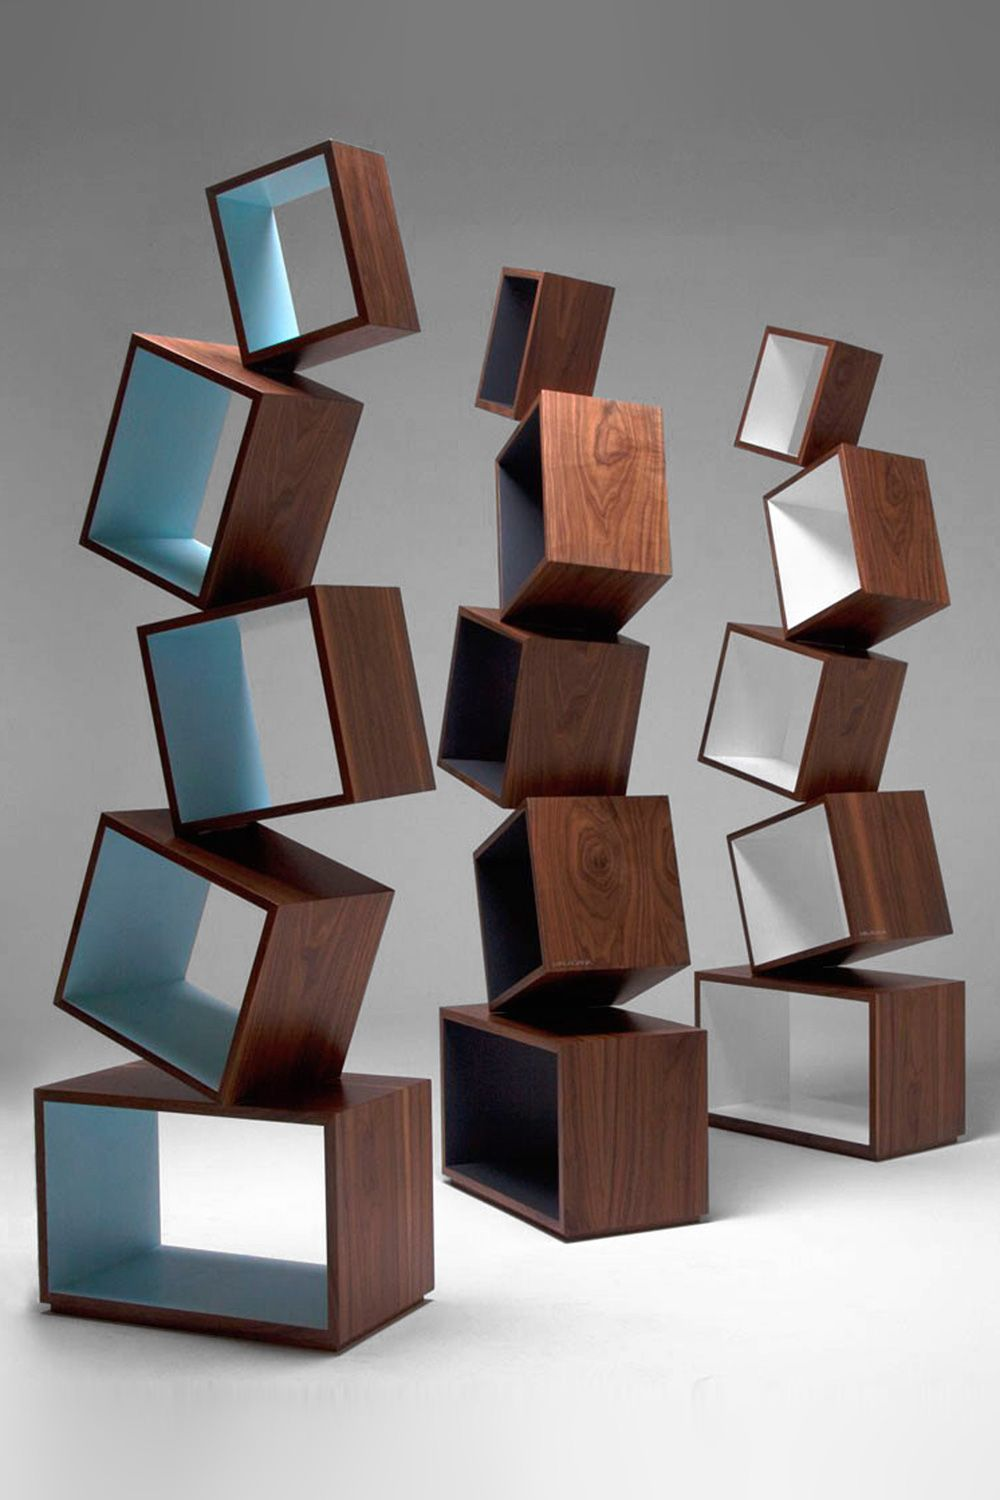 Equilibrium Bookcase Walnut By Malagana Design From Colombia  # Muebles Full House Colombia